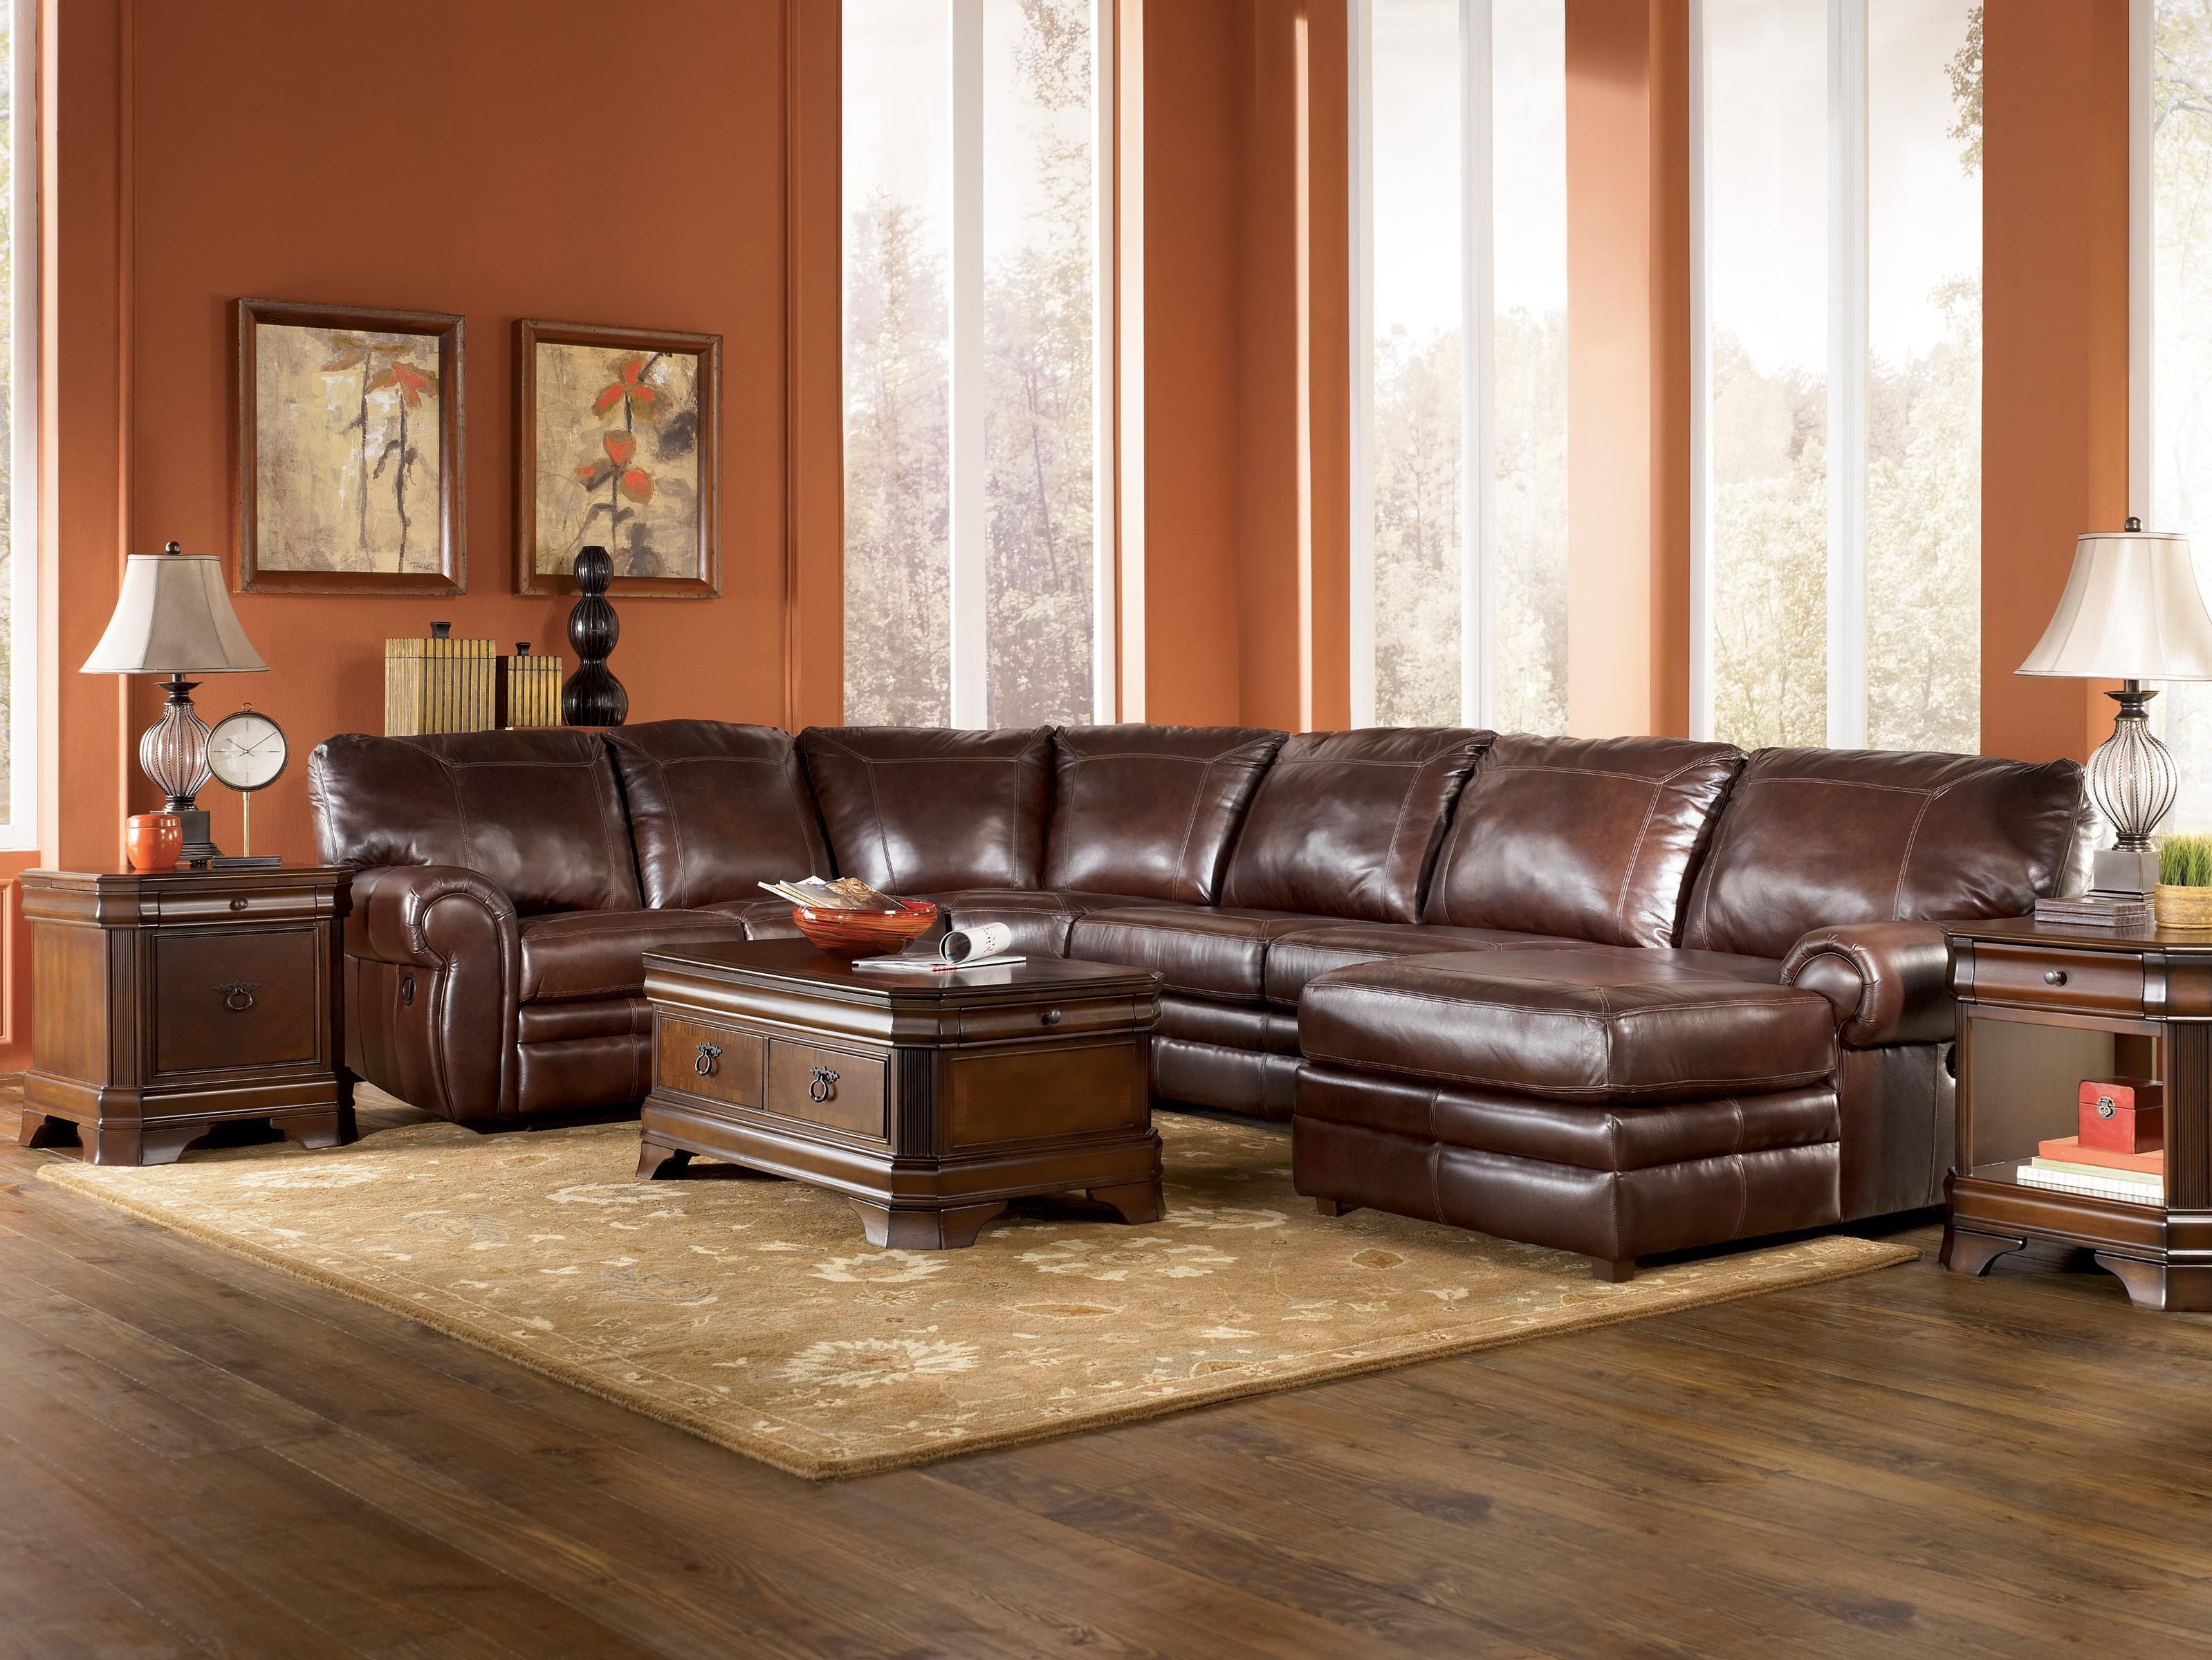 Merrion 43100 By Signature Design By Ashley Knoxville Wholesale Furniture Signature Living Room Recliner Sectional Living Room Sets Living Room Sectional